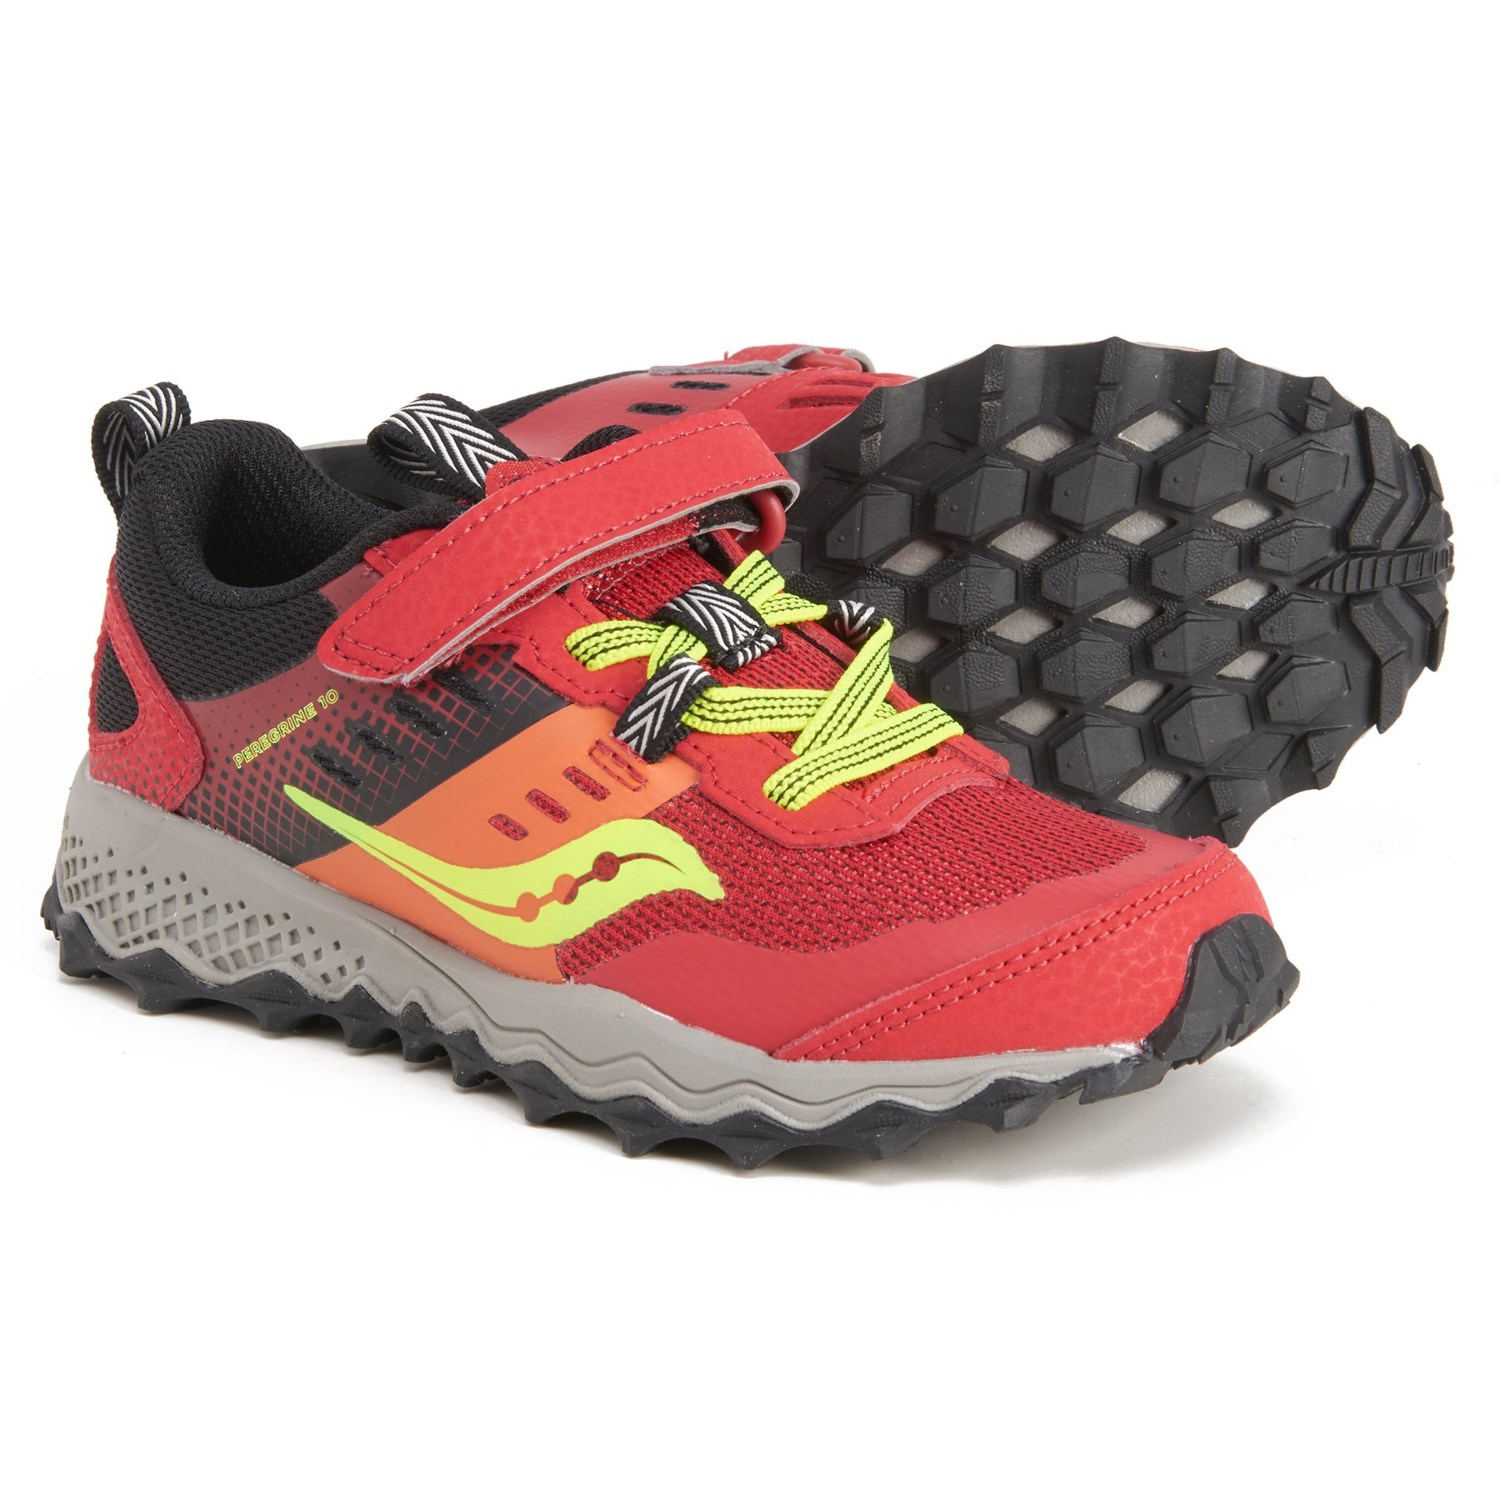 Saucony Peregrine 10 Shield A/C Trail Running Shoes (For Boys) - Save 37%